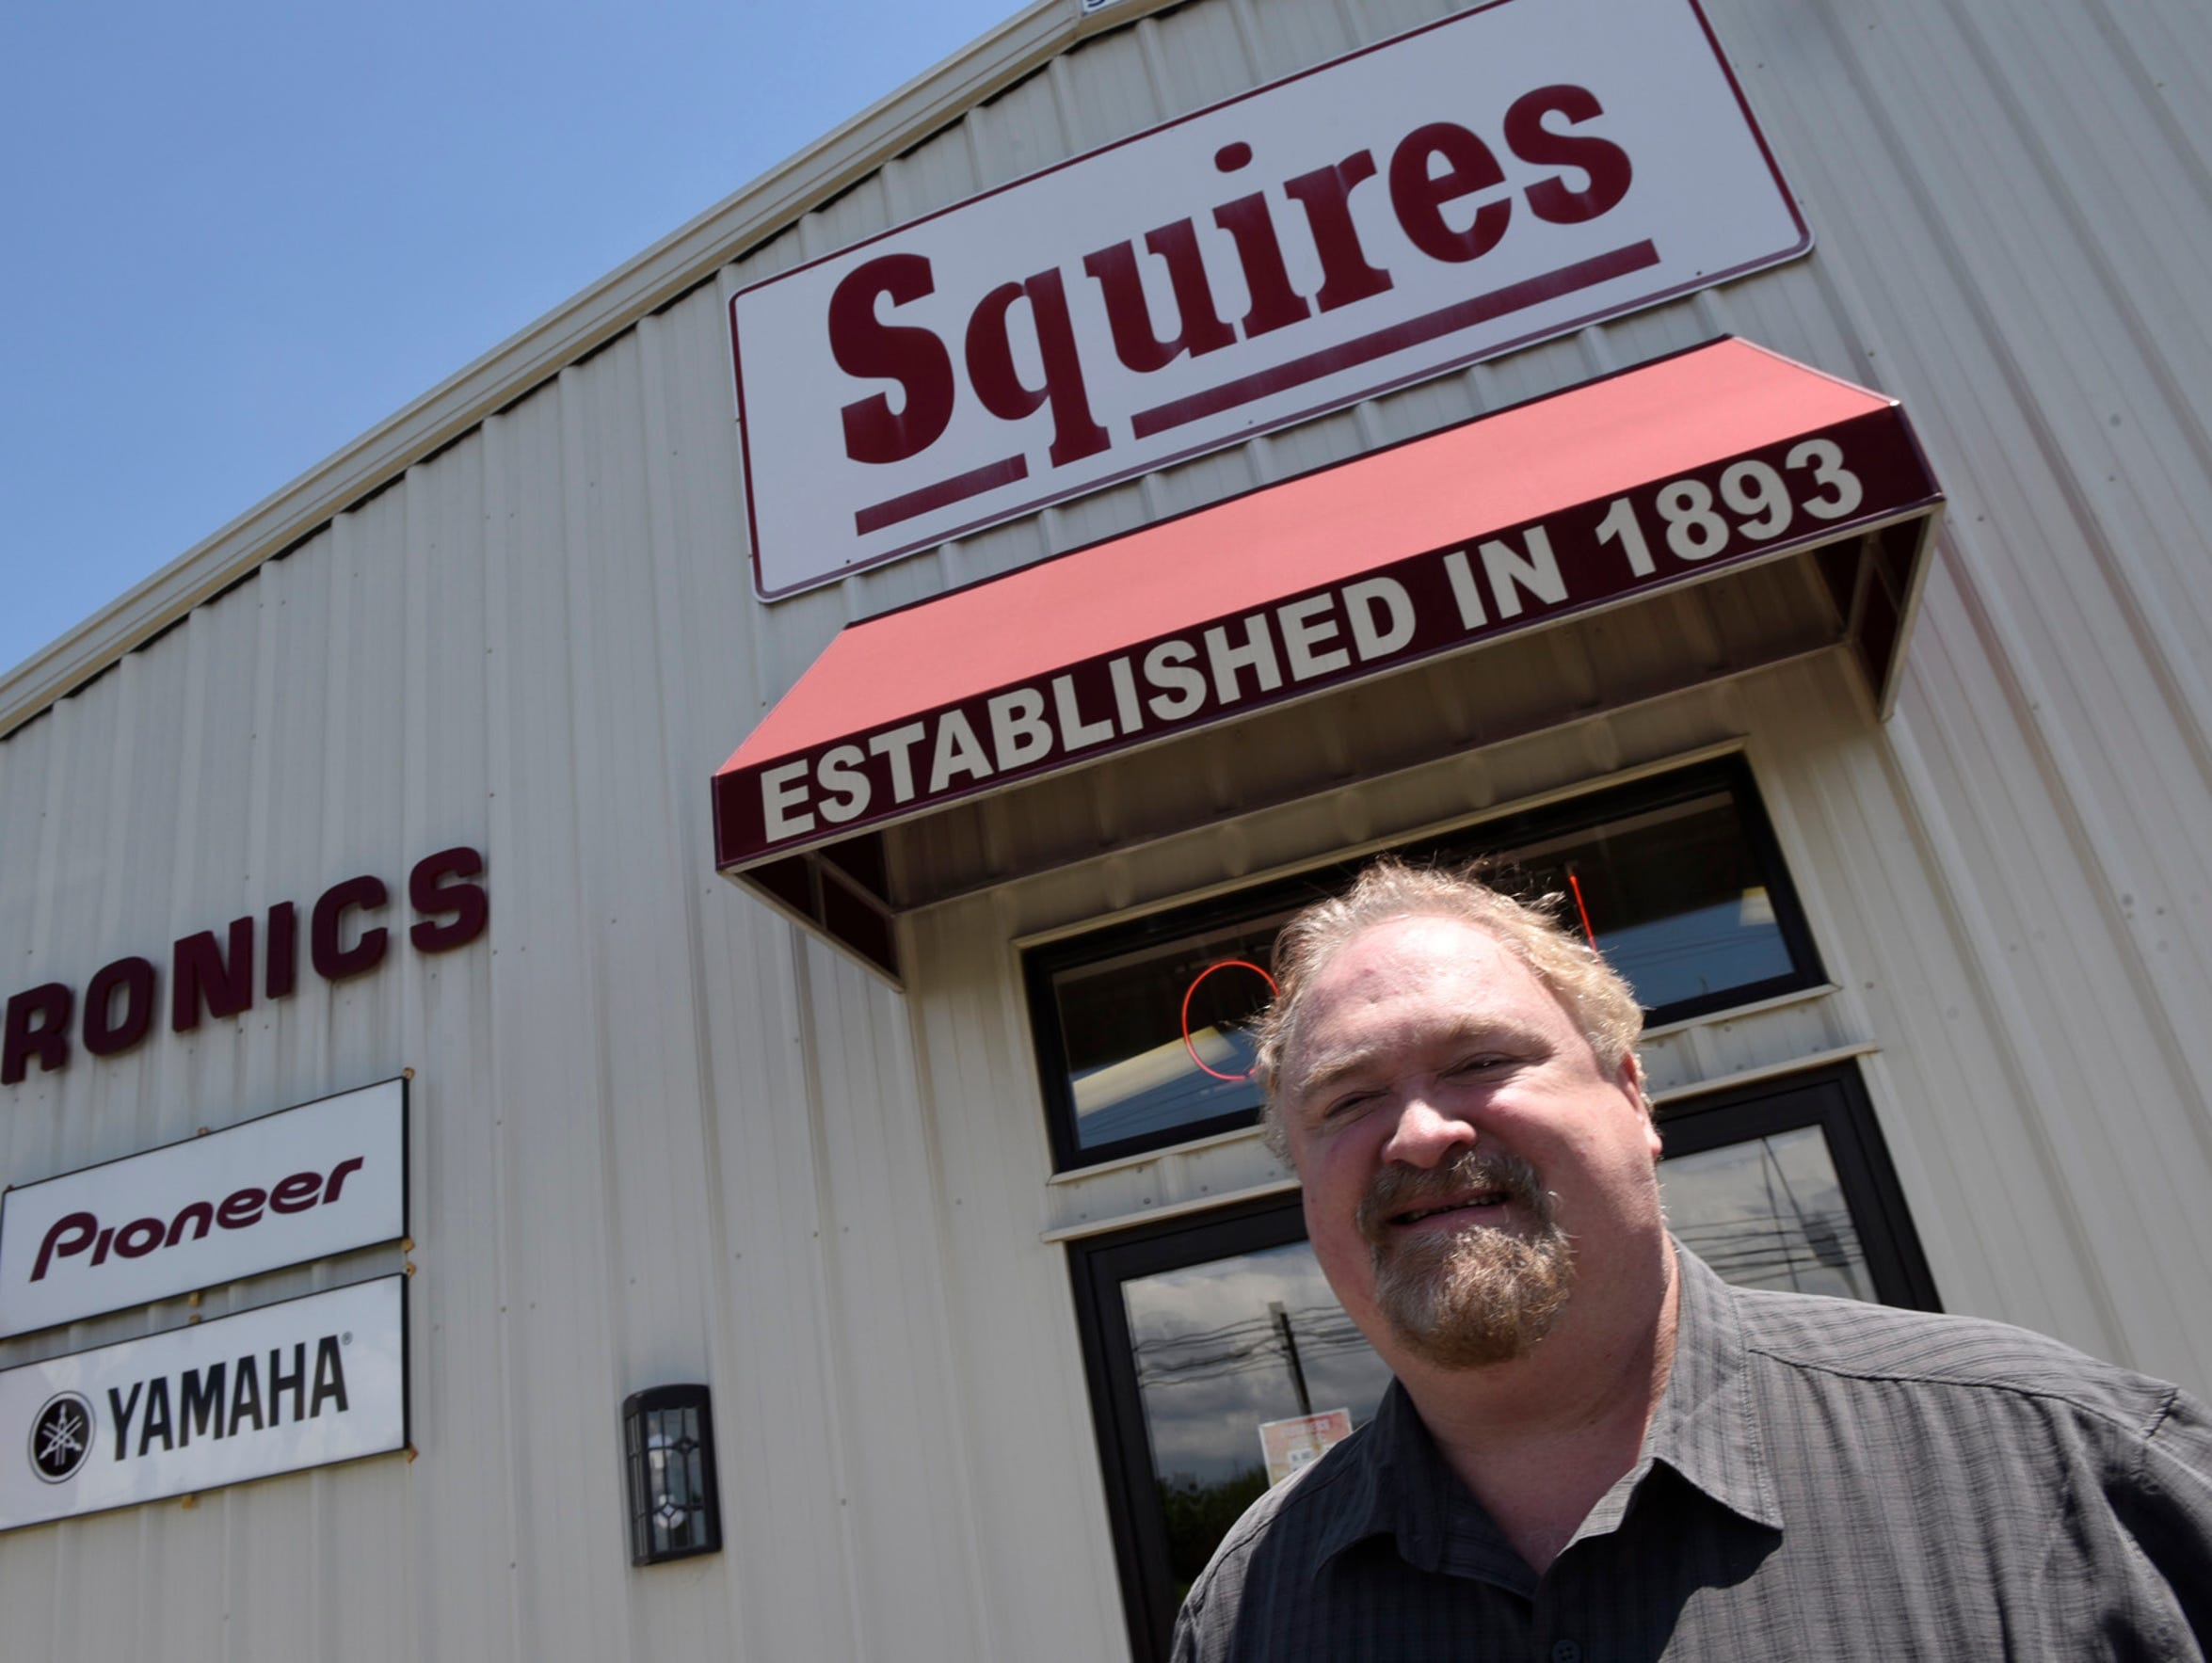 John Squires runs Squires Electronics and Appliances